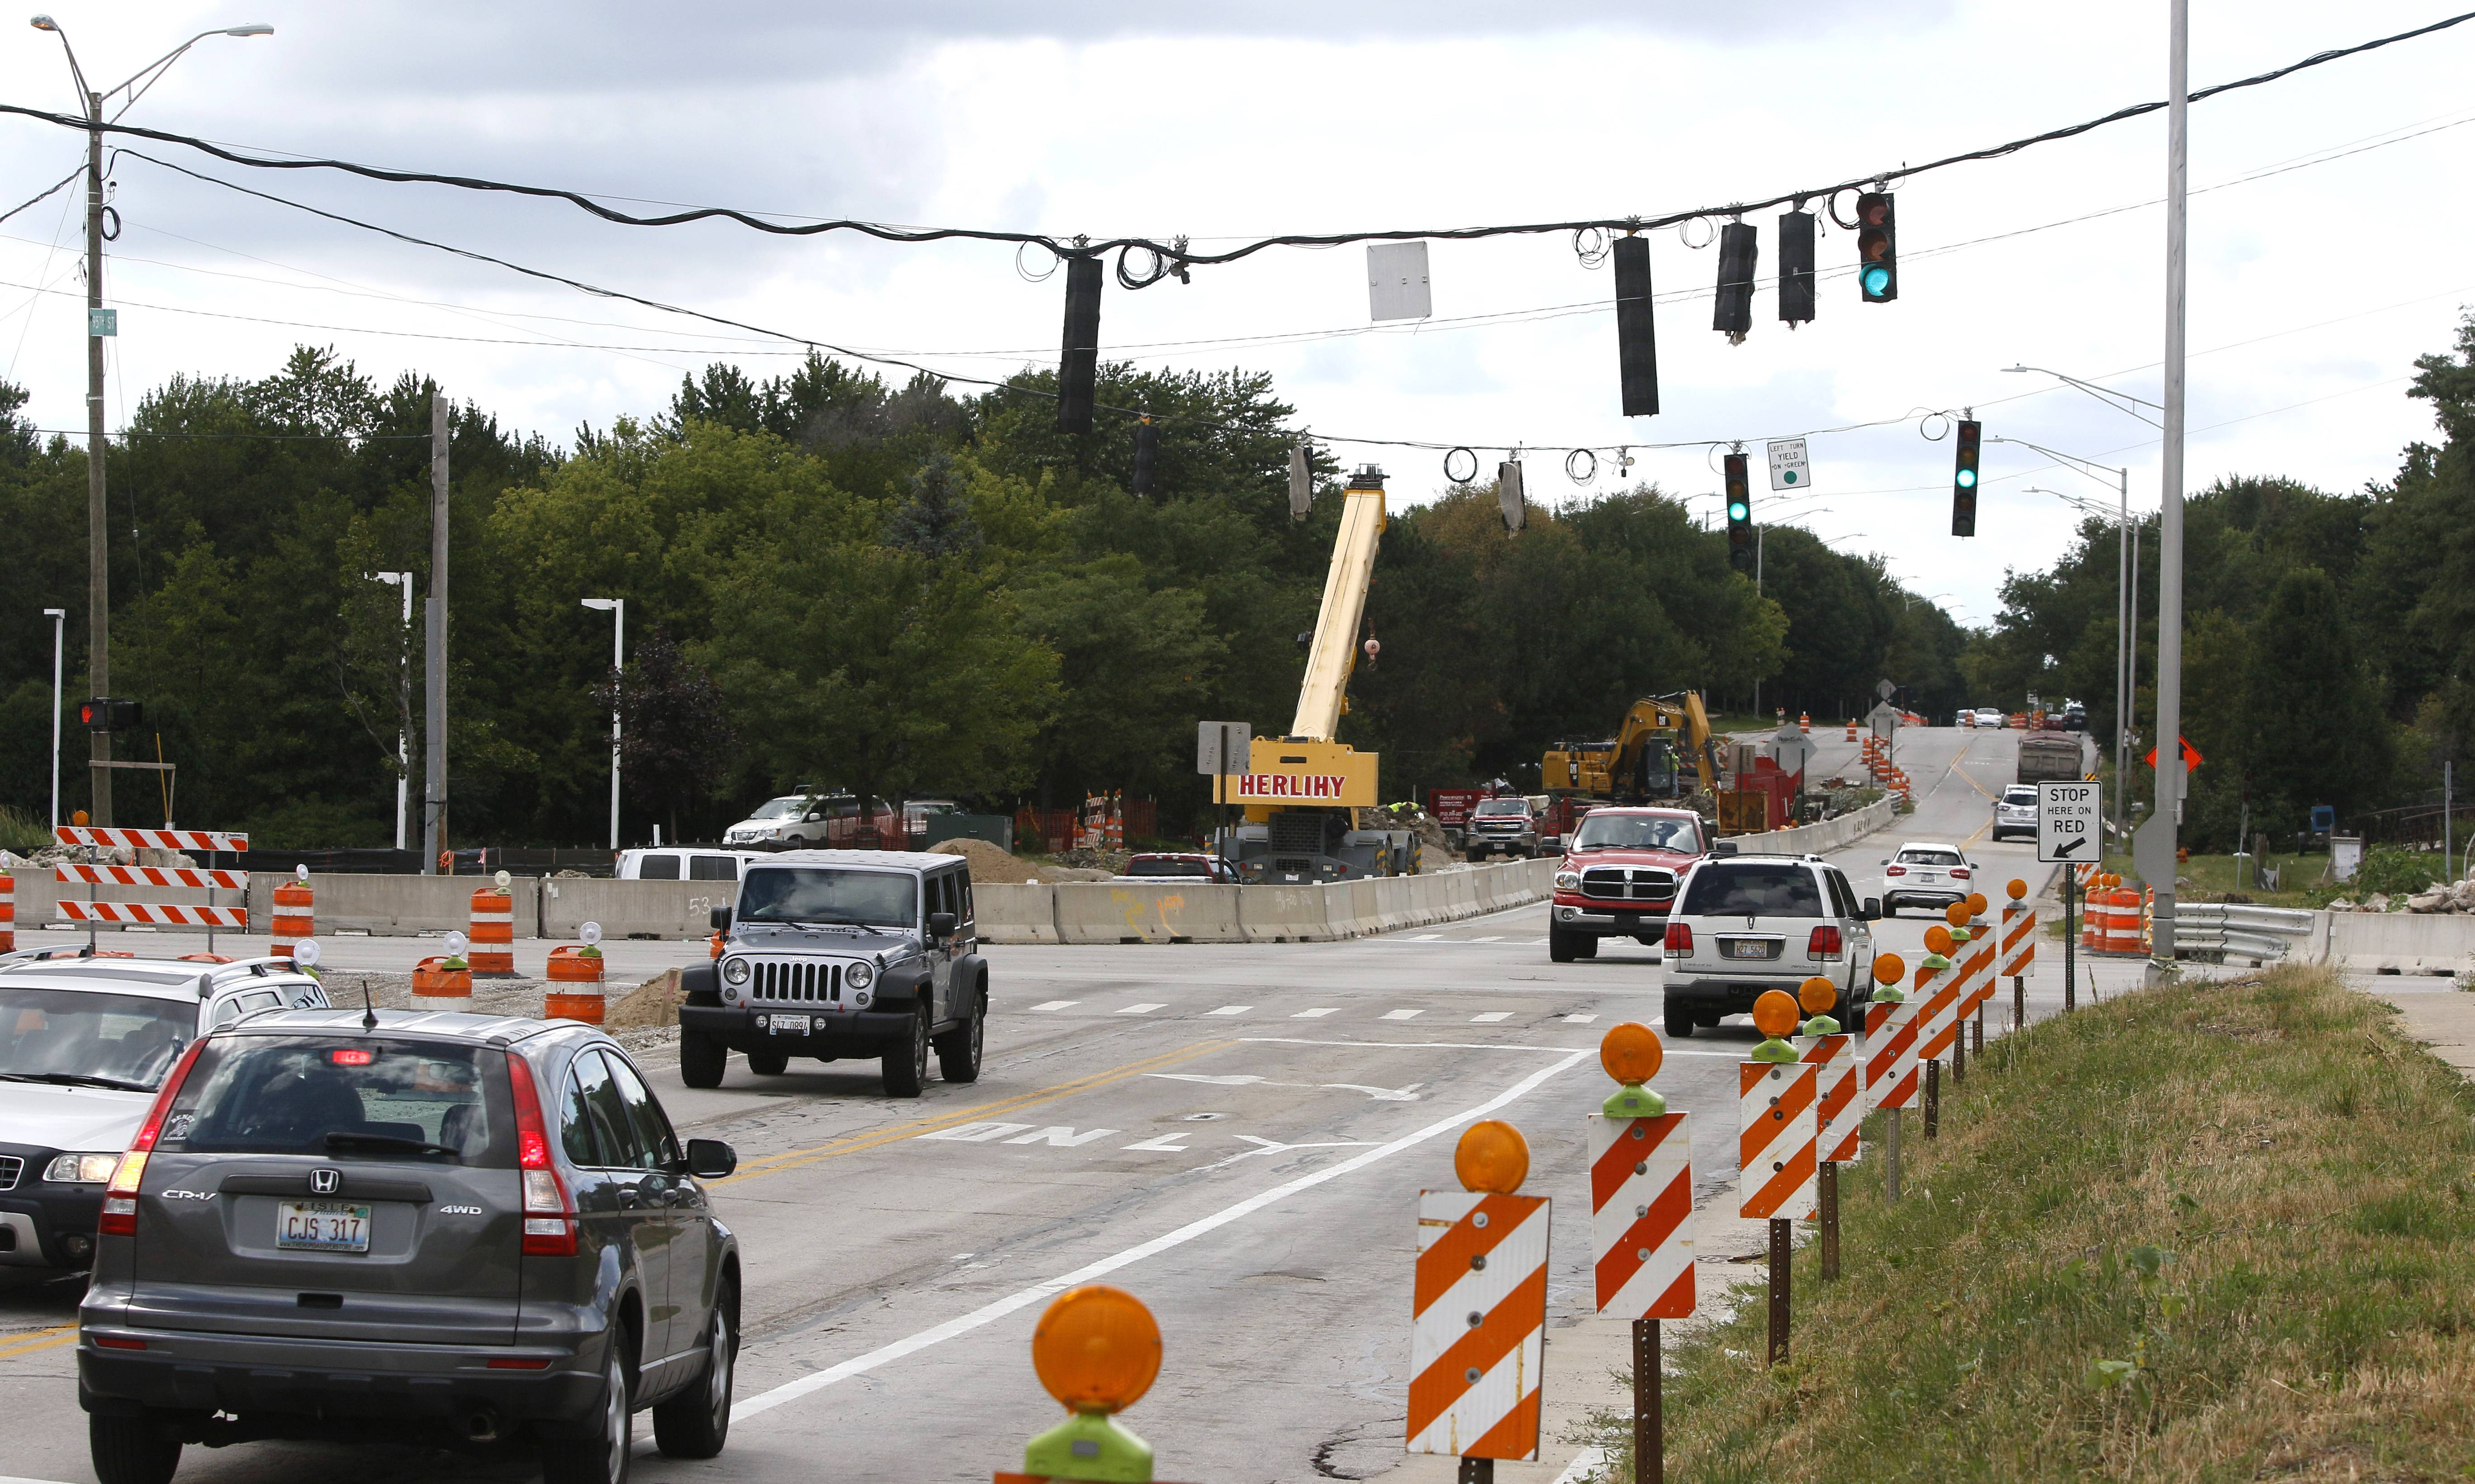 Residents at the northwest corner of 95th Street and Plainfield/Naperville Road, which has been under construction since April in a $6.5 million project to add turn lanes, say they want a sound wall to block noise from the road getting closer to their homes.